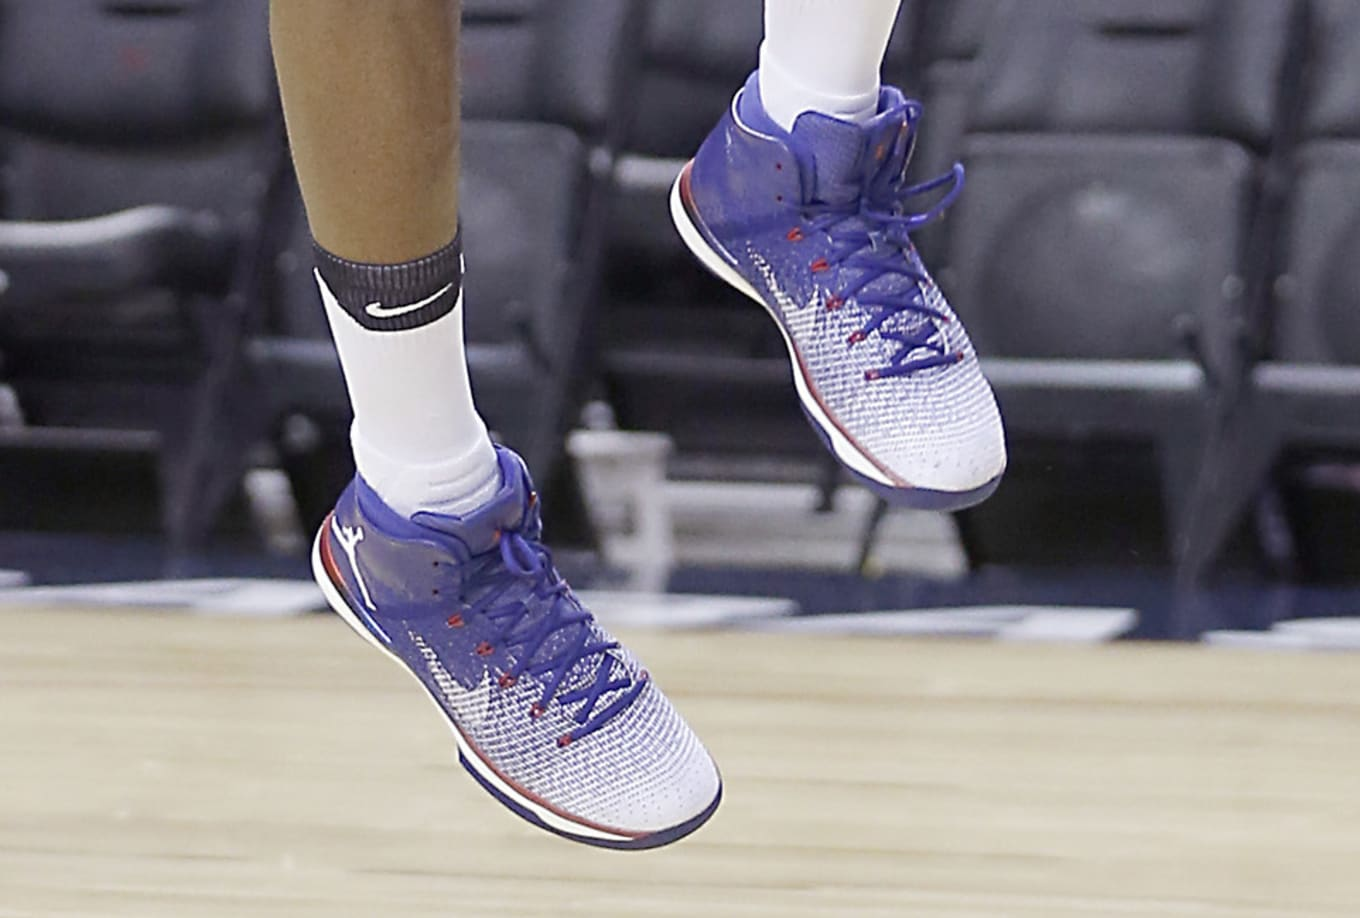 ede5a725072 Jimmy Butler Debuts New Jordans at Practice. Another red